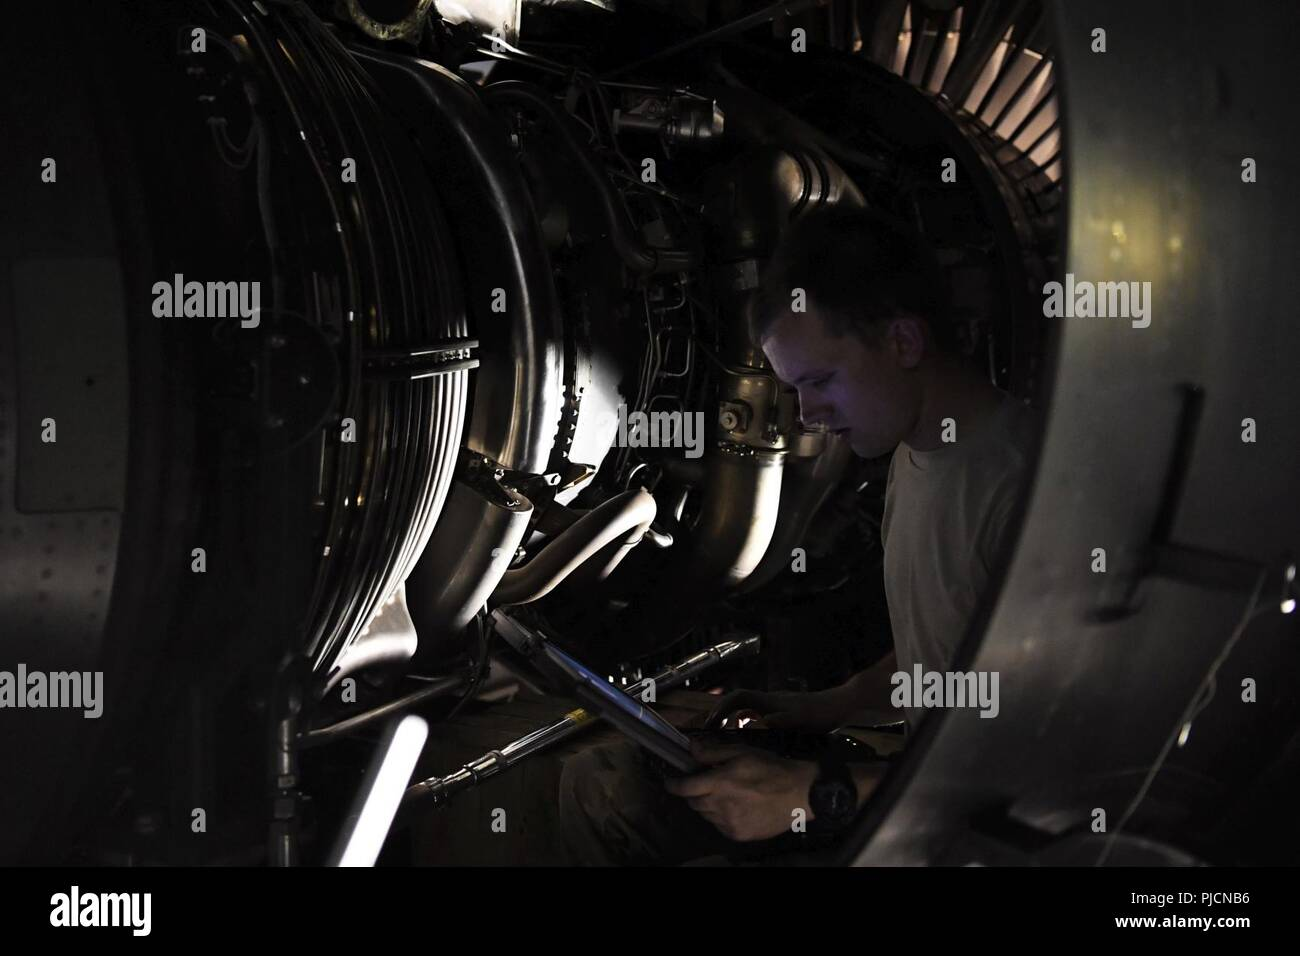 Staff Sgt. Sean Donnelly, 721st Air Mobility Operations Group airlift specialist mission maintenance craftsman, reviews engine schematics during an engine installation of a C-17 Globemaster III aircraft July 19, 2018, at an undisclosed location in Southwest Asia. Donnelly and his fellow 721st AMOG Airmen, who hail from Ramstein Air Base, Germany, delivered the engine and partnered with the 5th Expeditionary Mobility Squadron for the project. - Stock Image